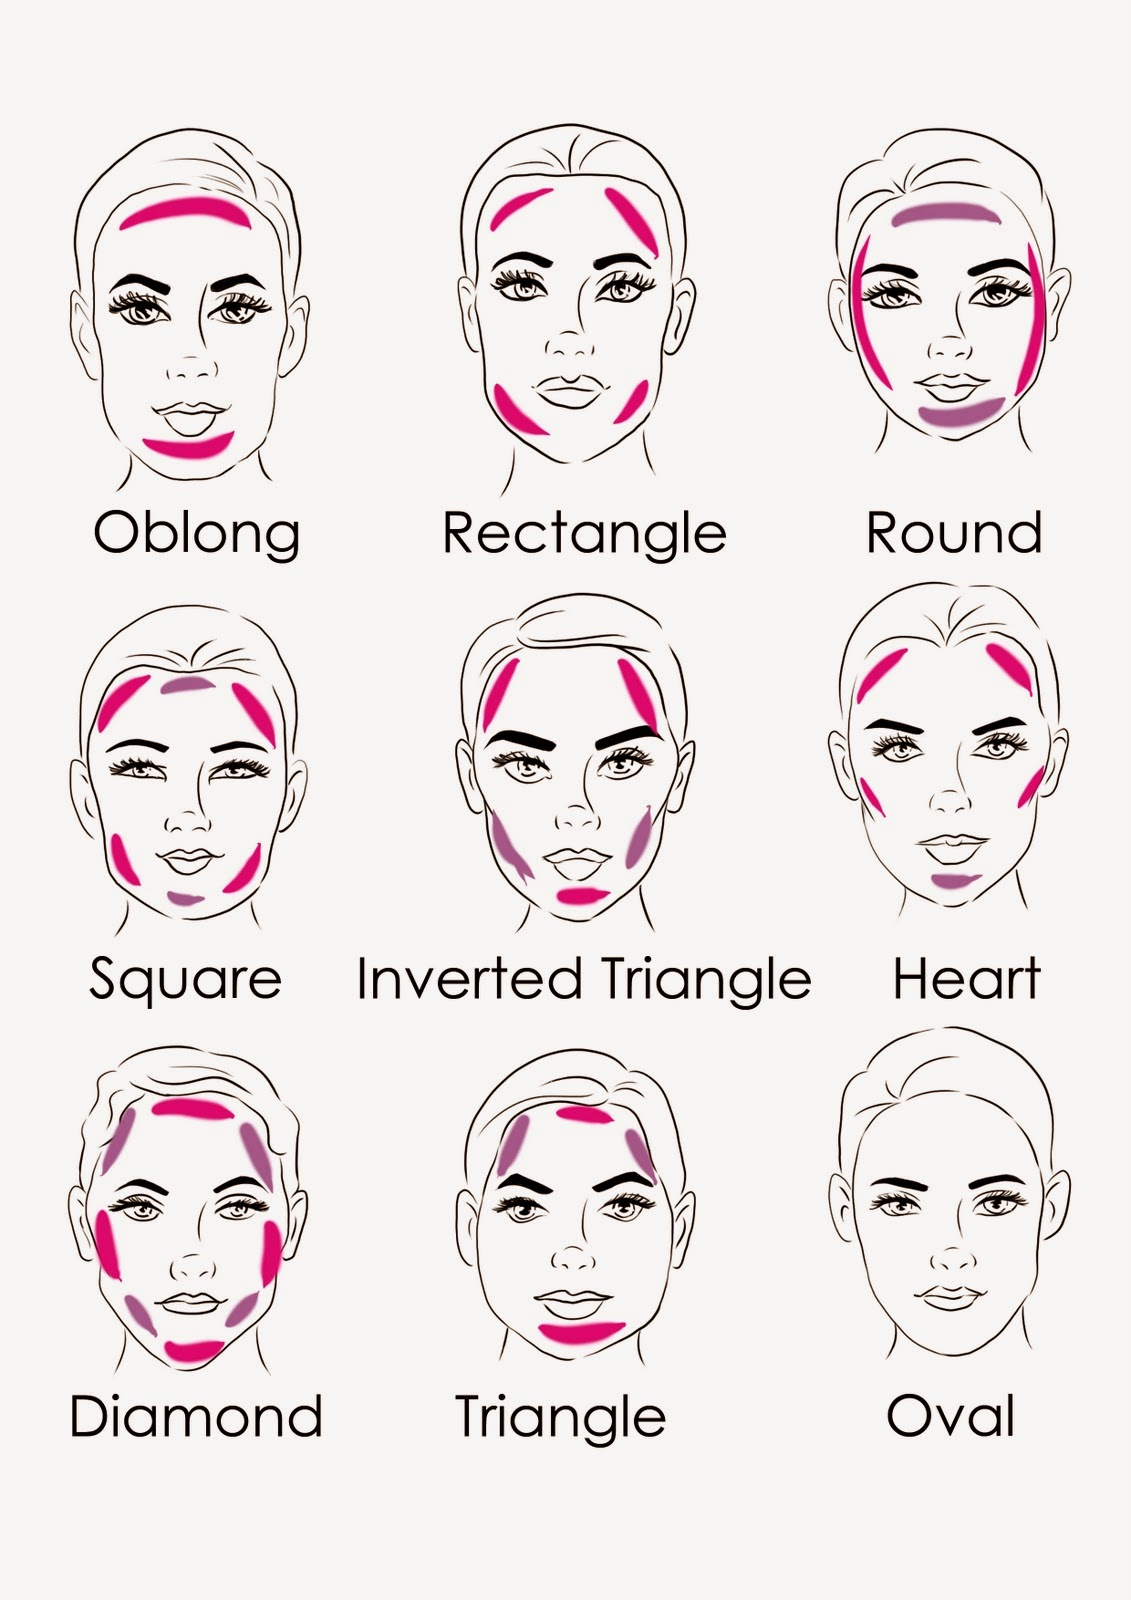 26 Best Images About Noses On Pinterest  Wayne Rooney, Shape And Face  Shape Chart